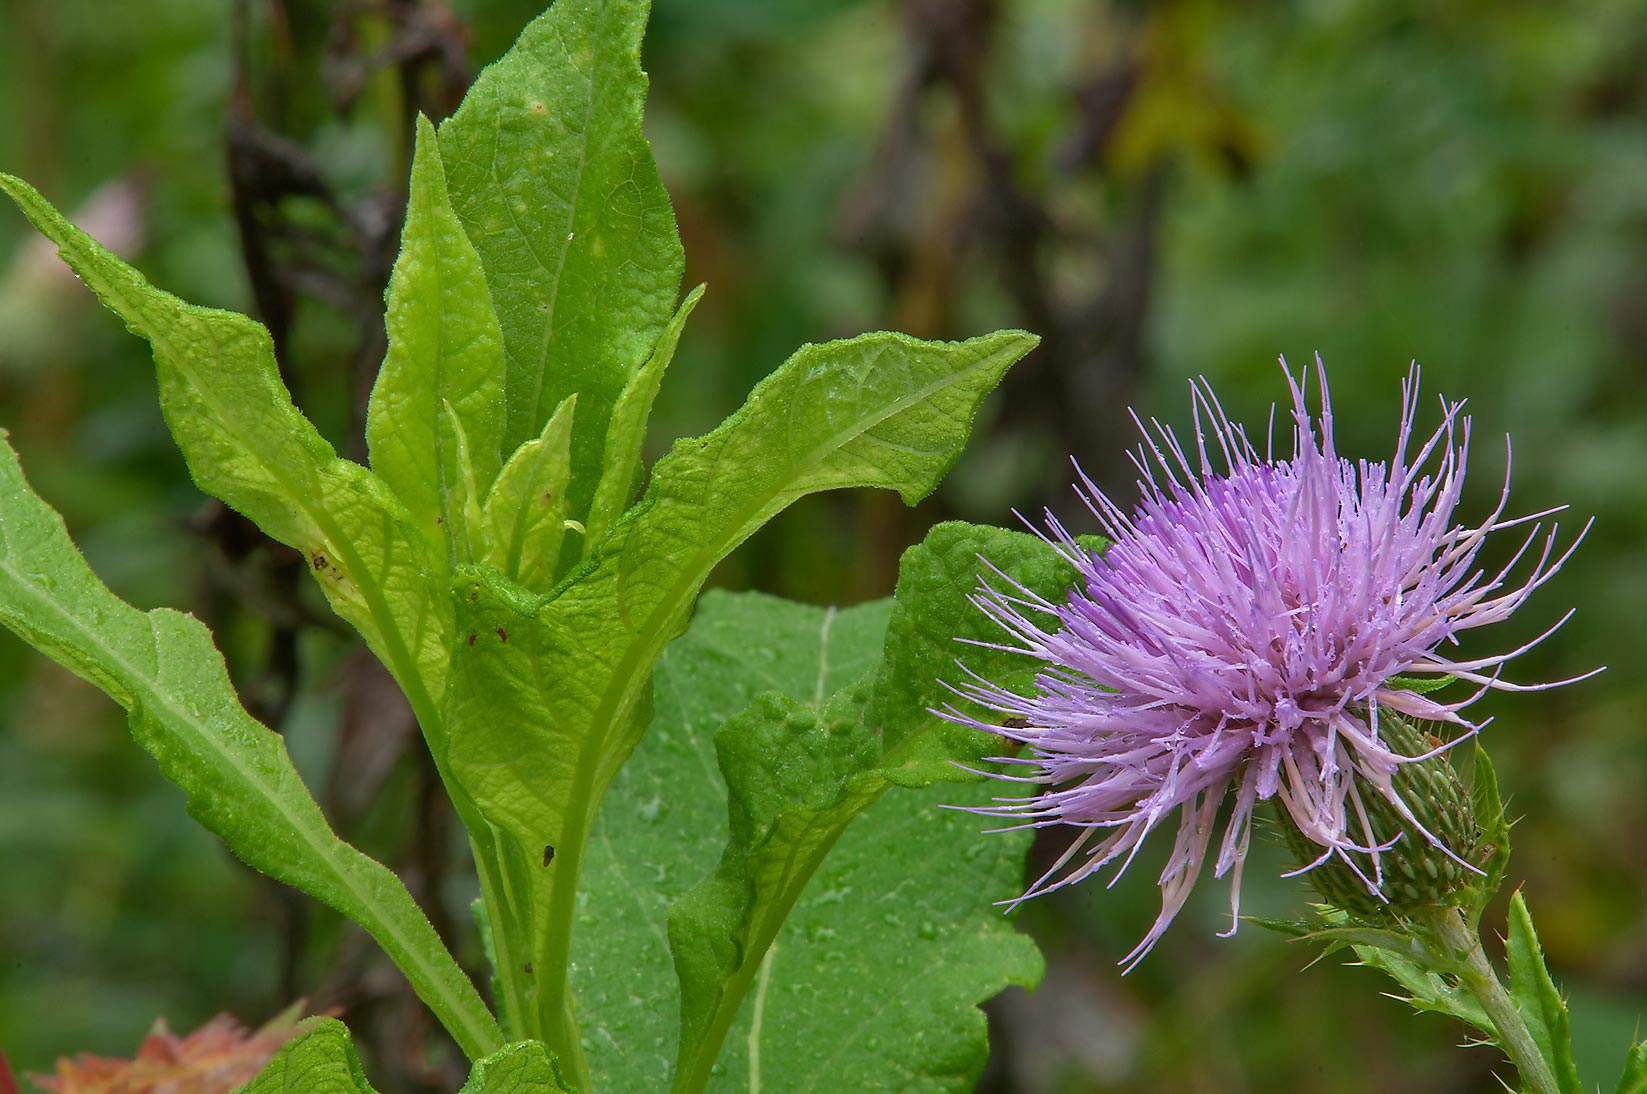 Frostweed and a thistle on Racoon Run Trail in Lick Creek Park. College Station, Texas